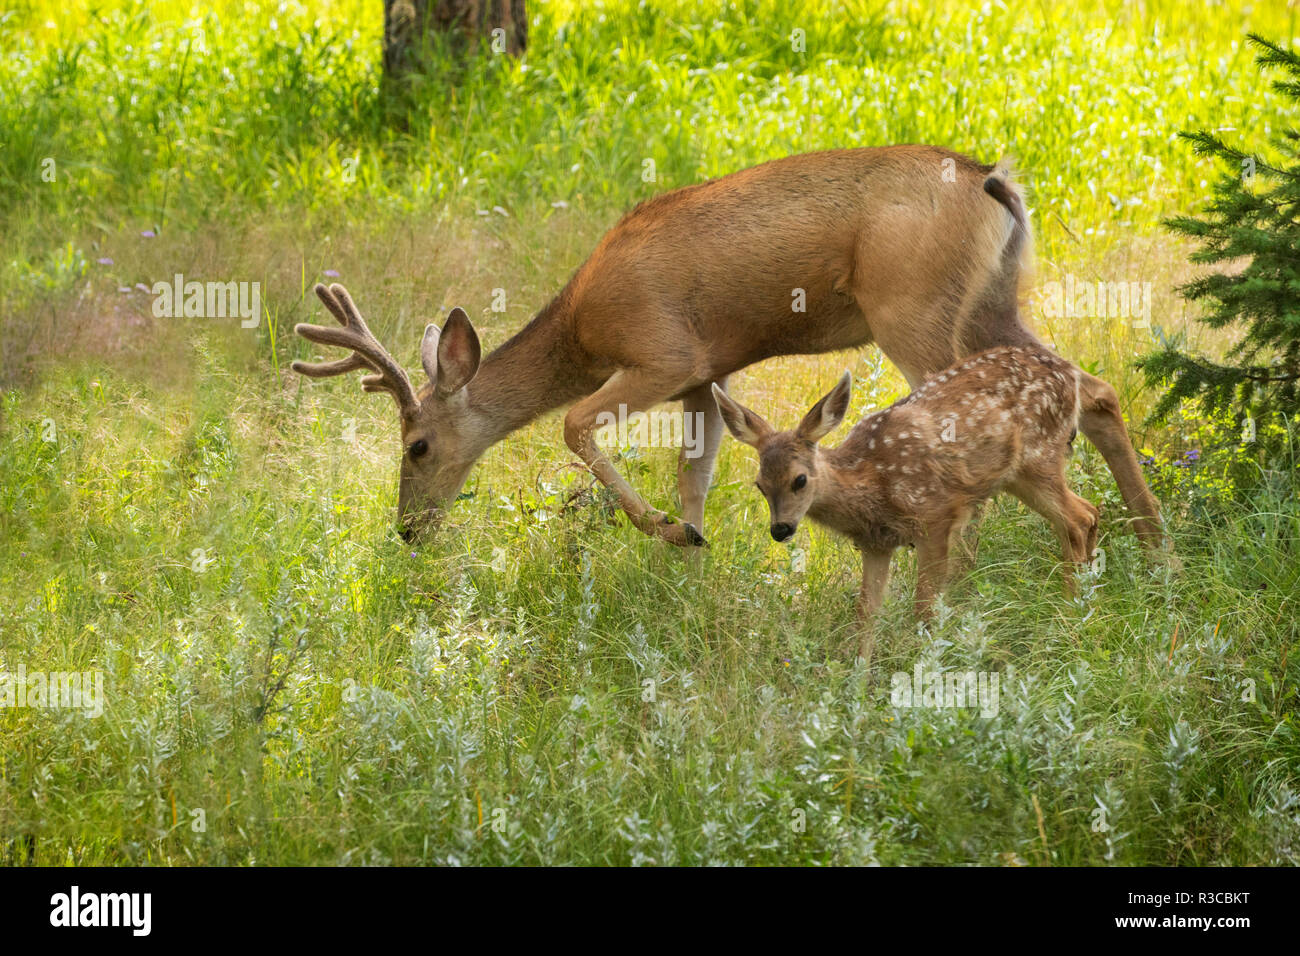 USA, Colorado, Pike National Forest. Mule deer young buck and fawn. - Stock Image